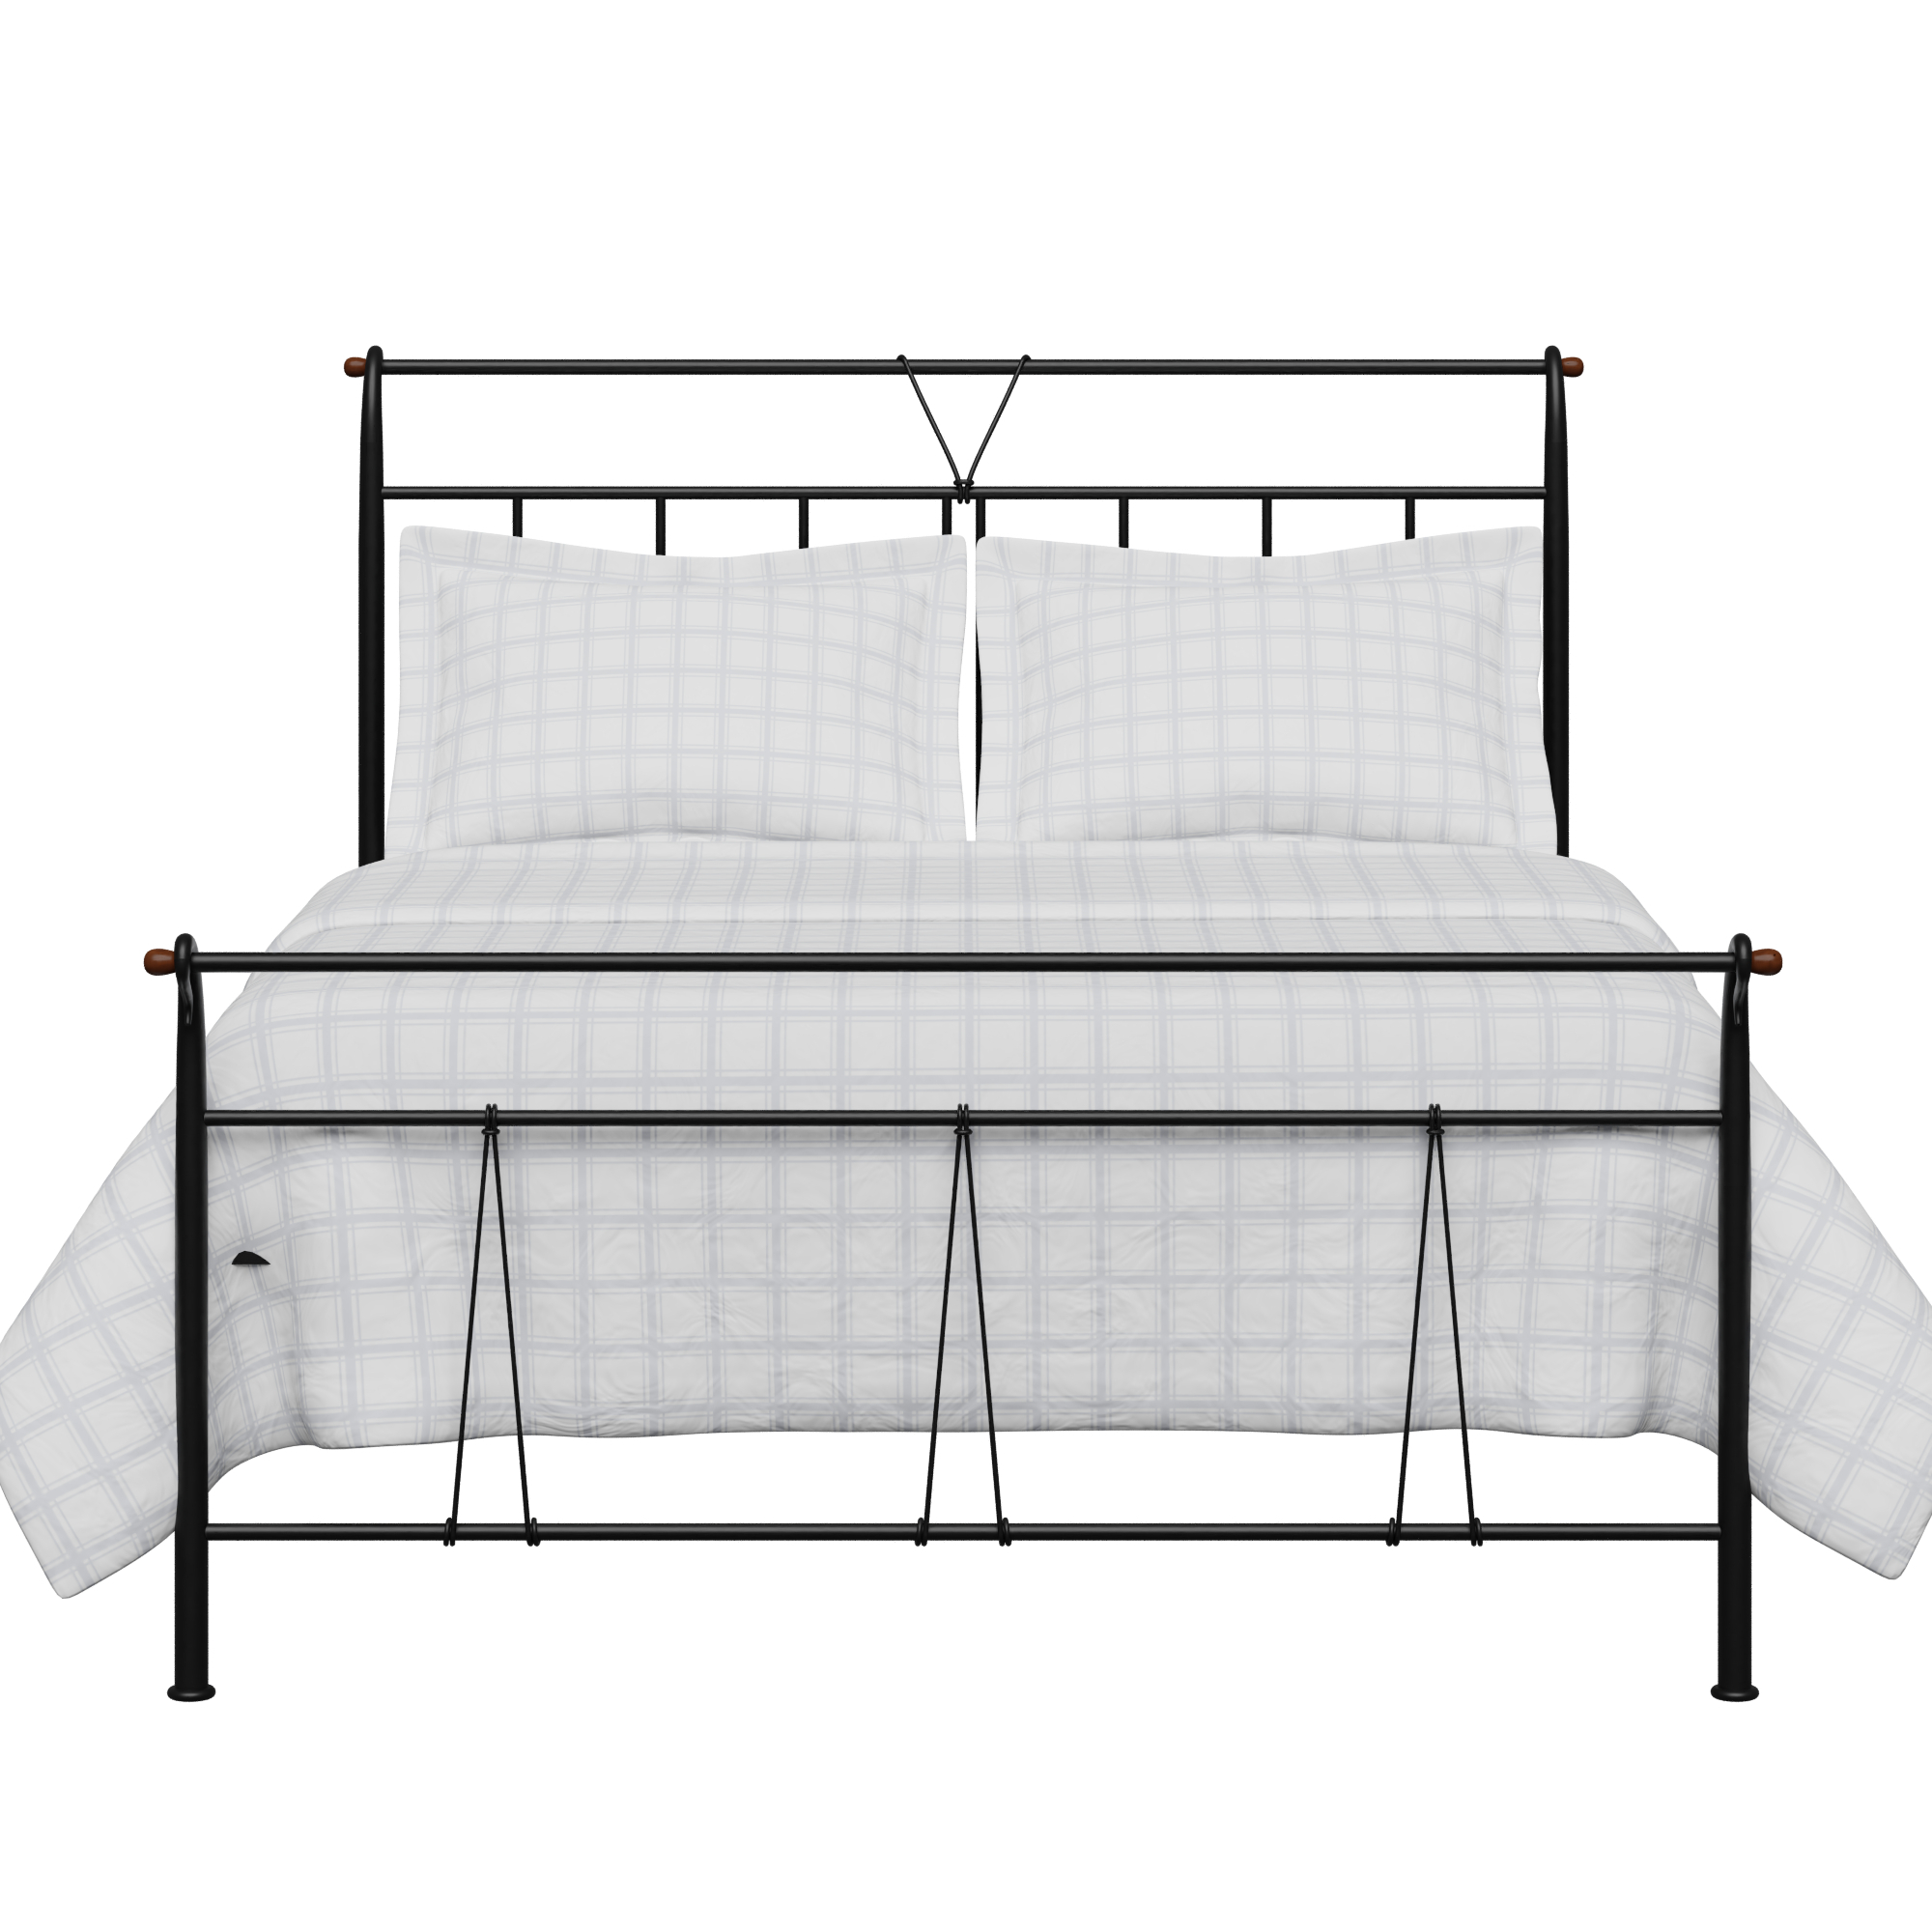 Pellini iron/metal bed in black